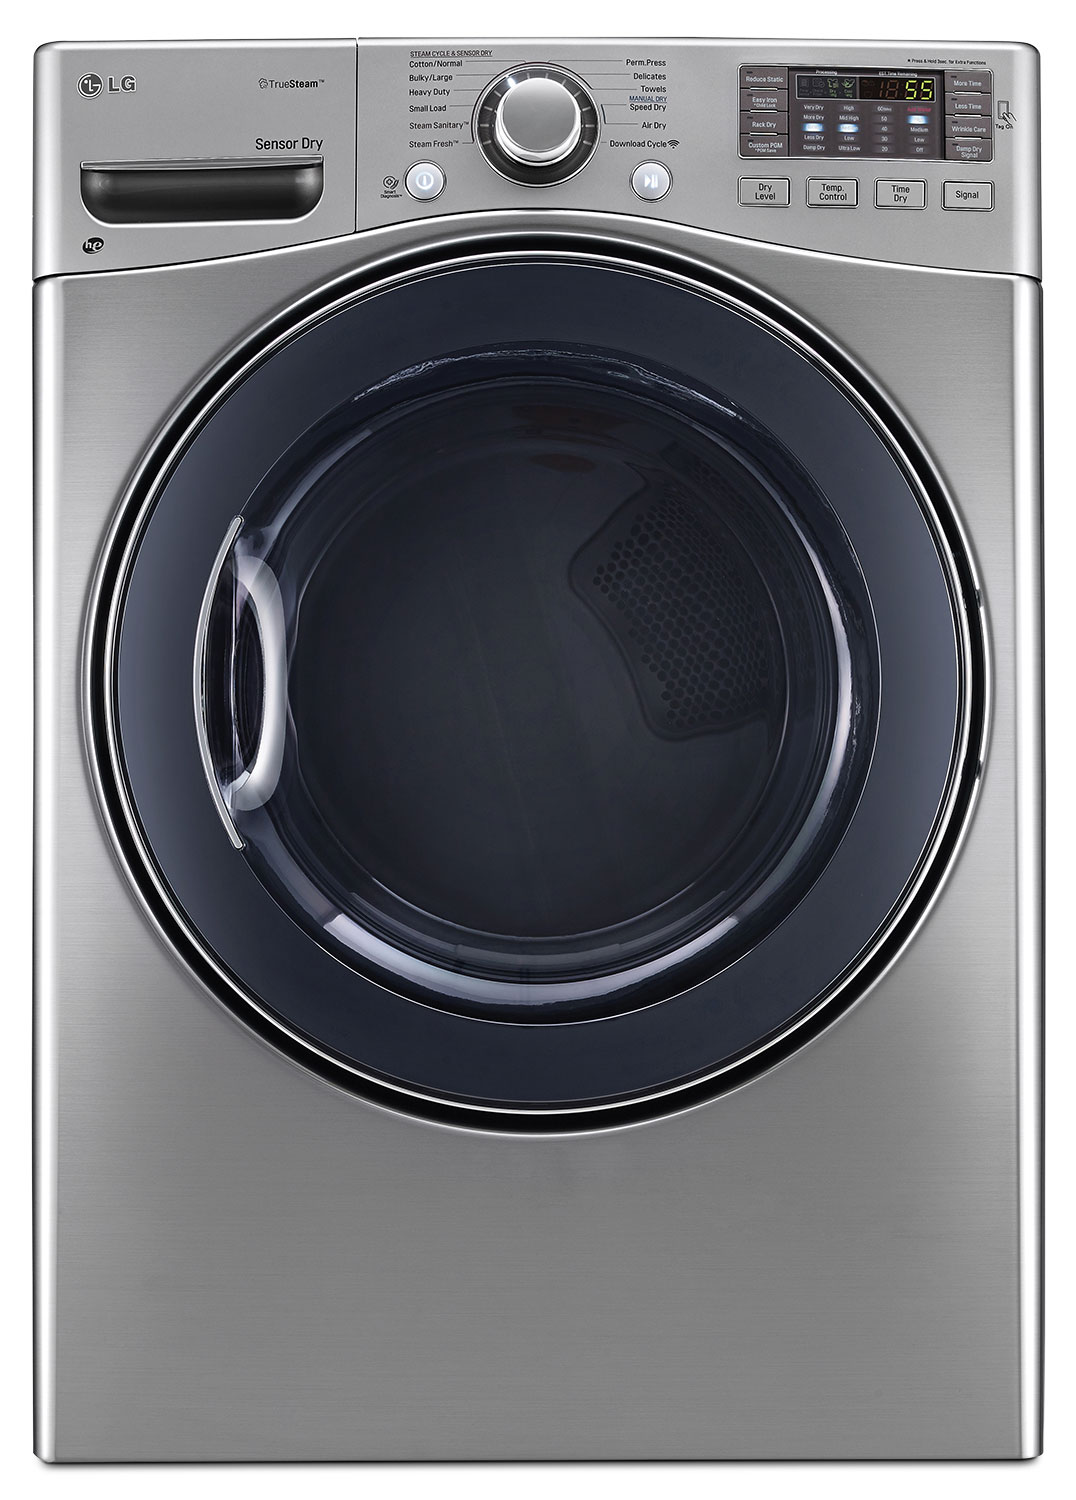 LG 7.4 Cu. Ft. Ultra-Large Capacity High-Efficiency Gas SteamDryer™ – Graphite Steel